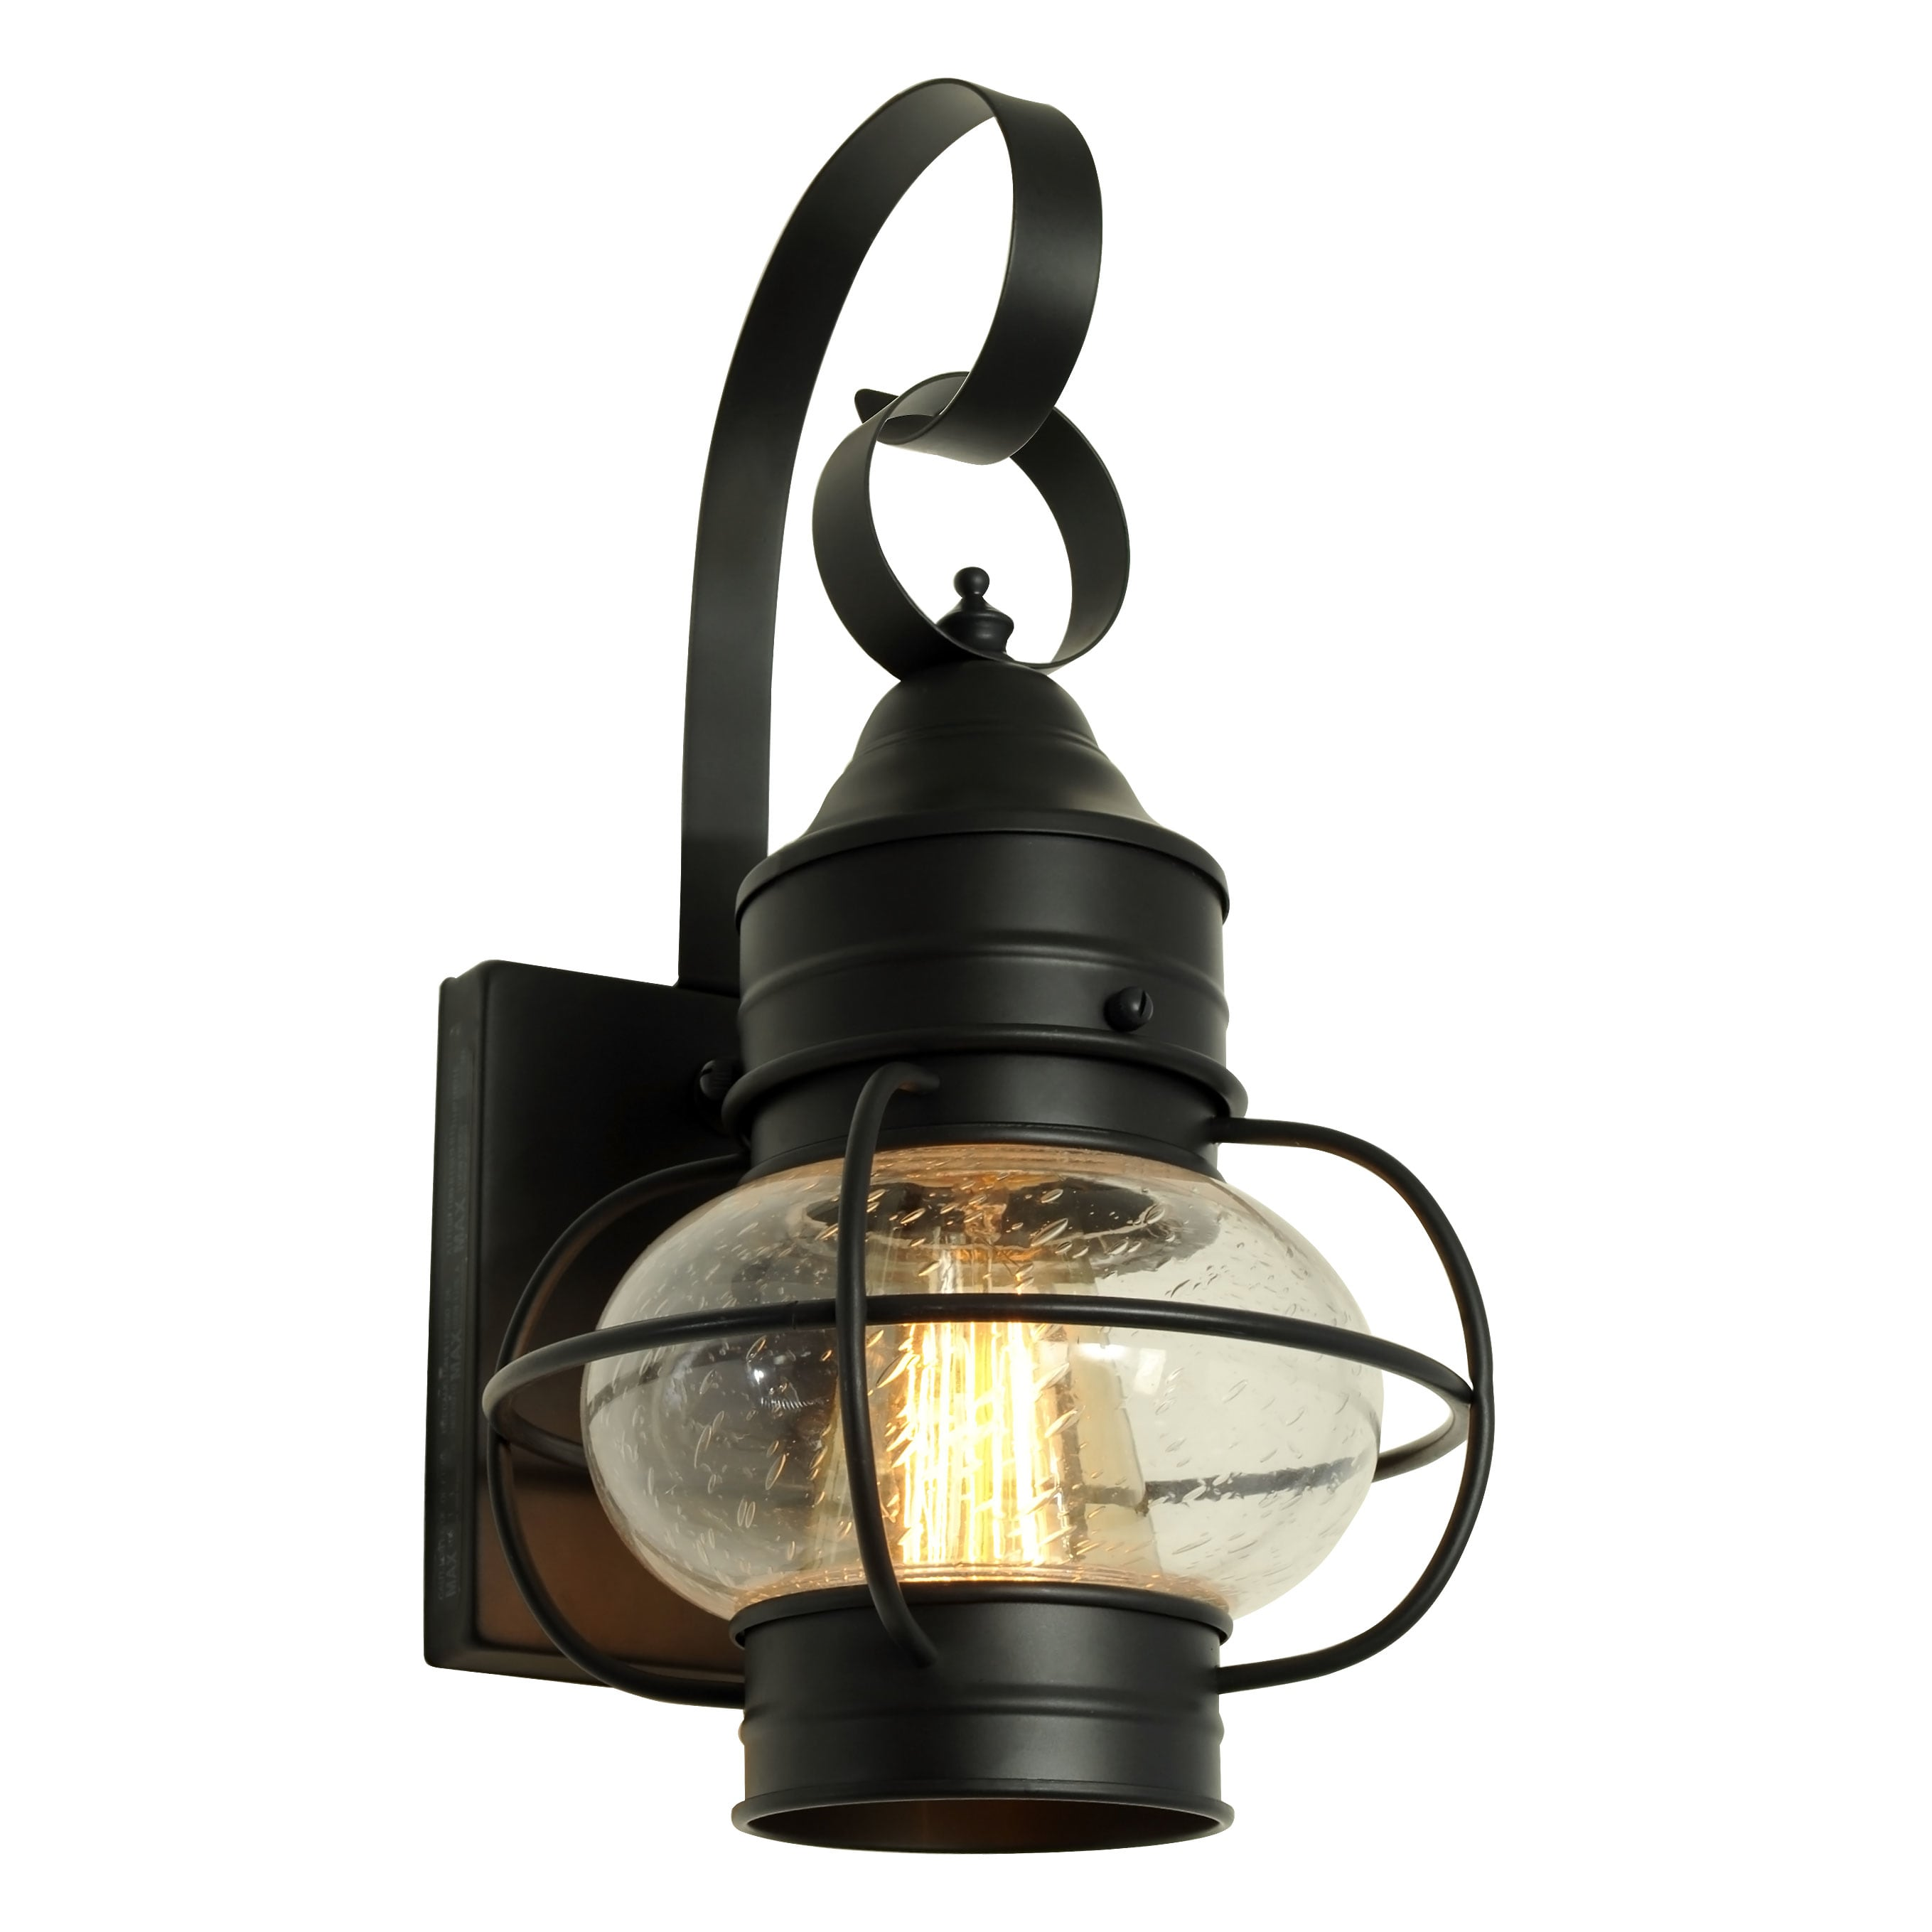 wall nautical beach house engines lights edison lantern pendants adjustable of lighting wedding sea chandelier size quote uk awesome hanging glass brushed multi light zoom floor pendant chandeliers nice for sconces full nickel kitchen fixtures lamps creative themed coastal brass sconce